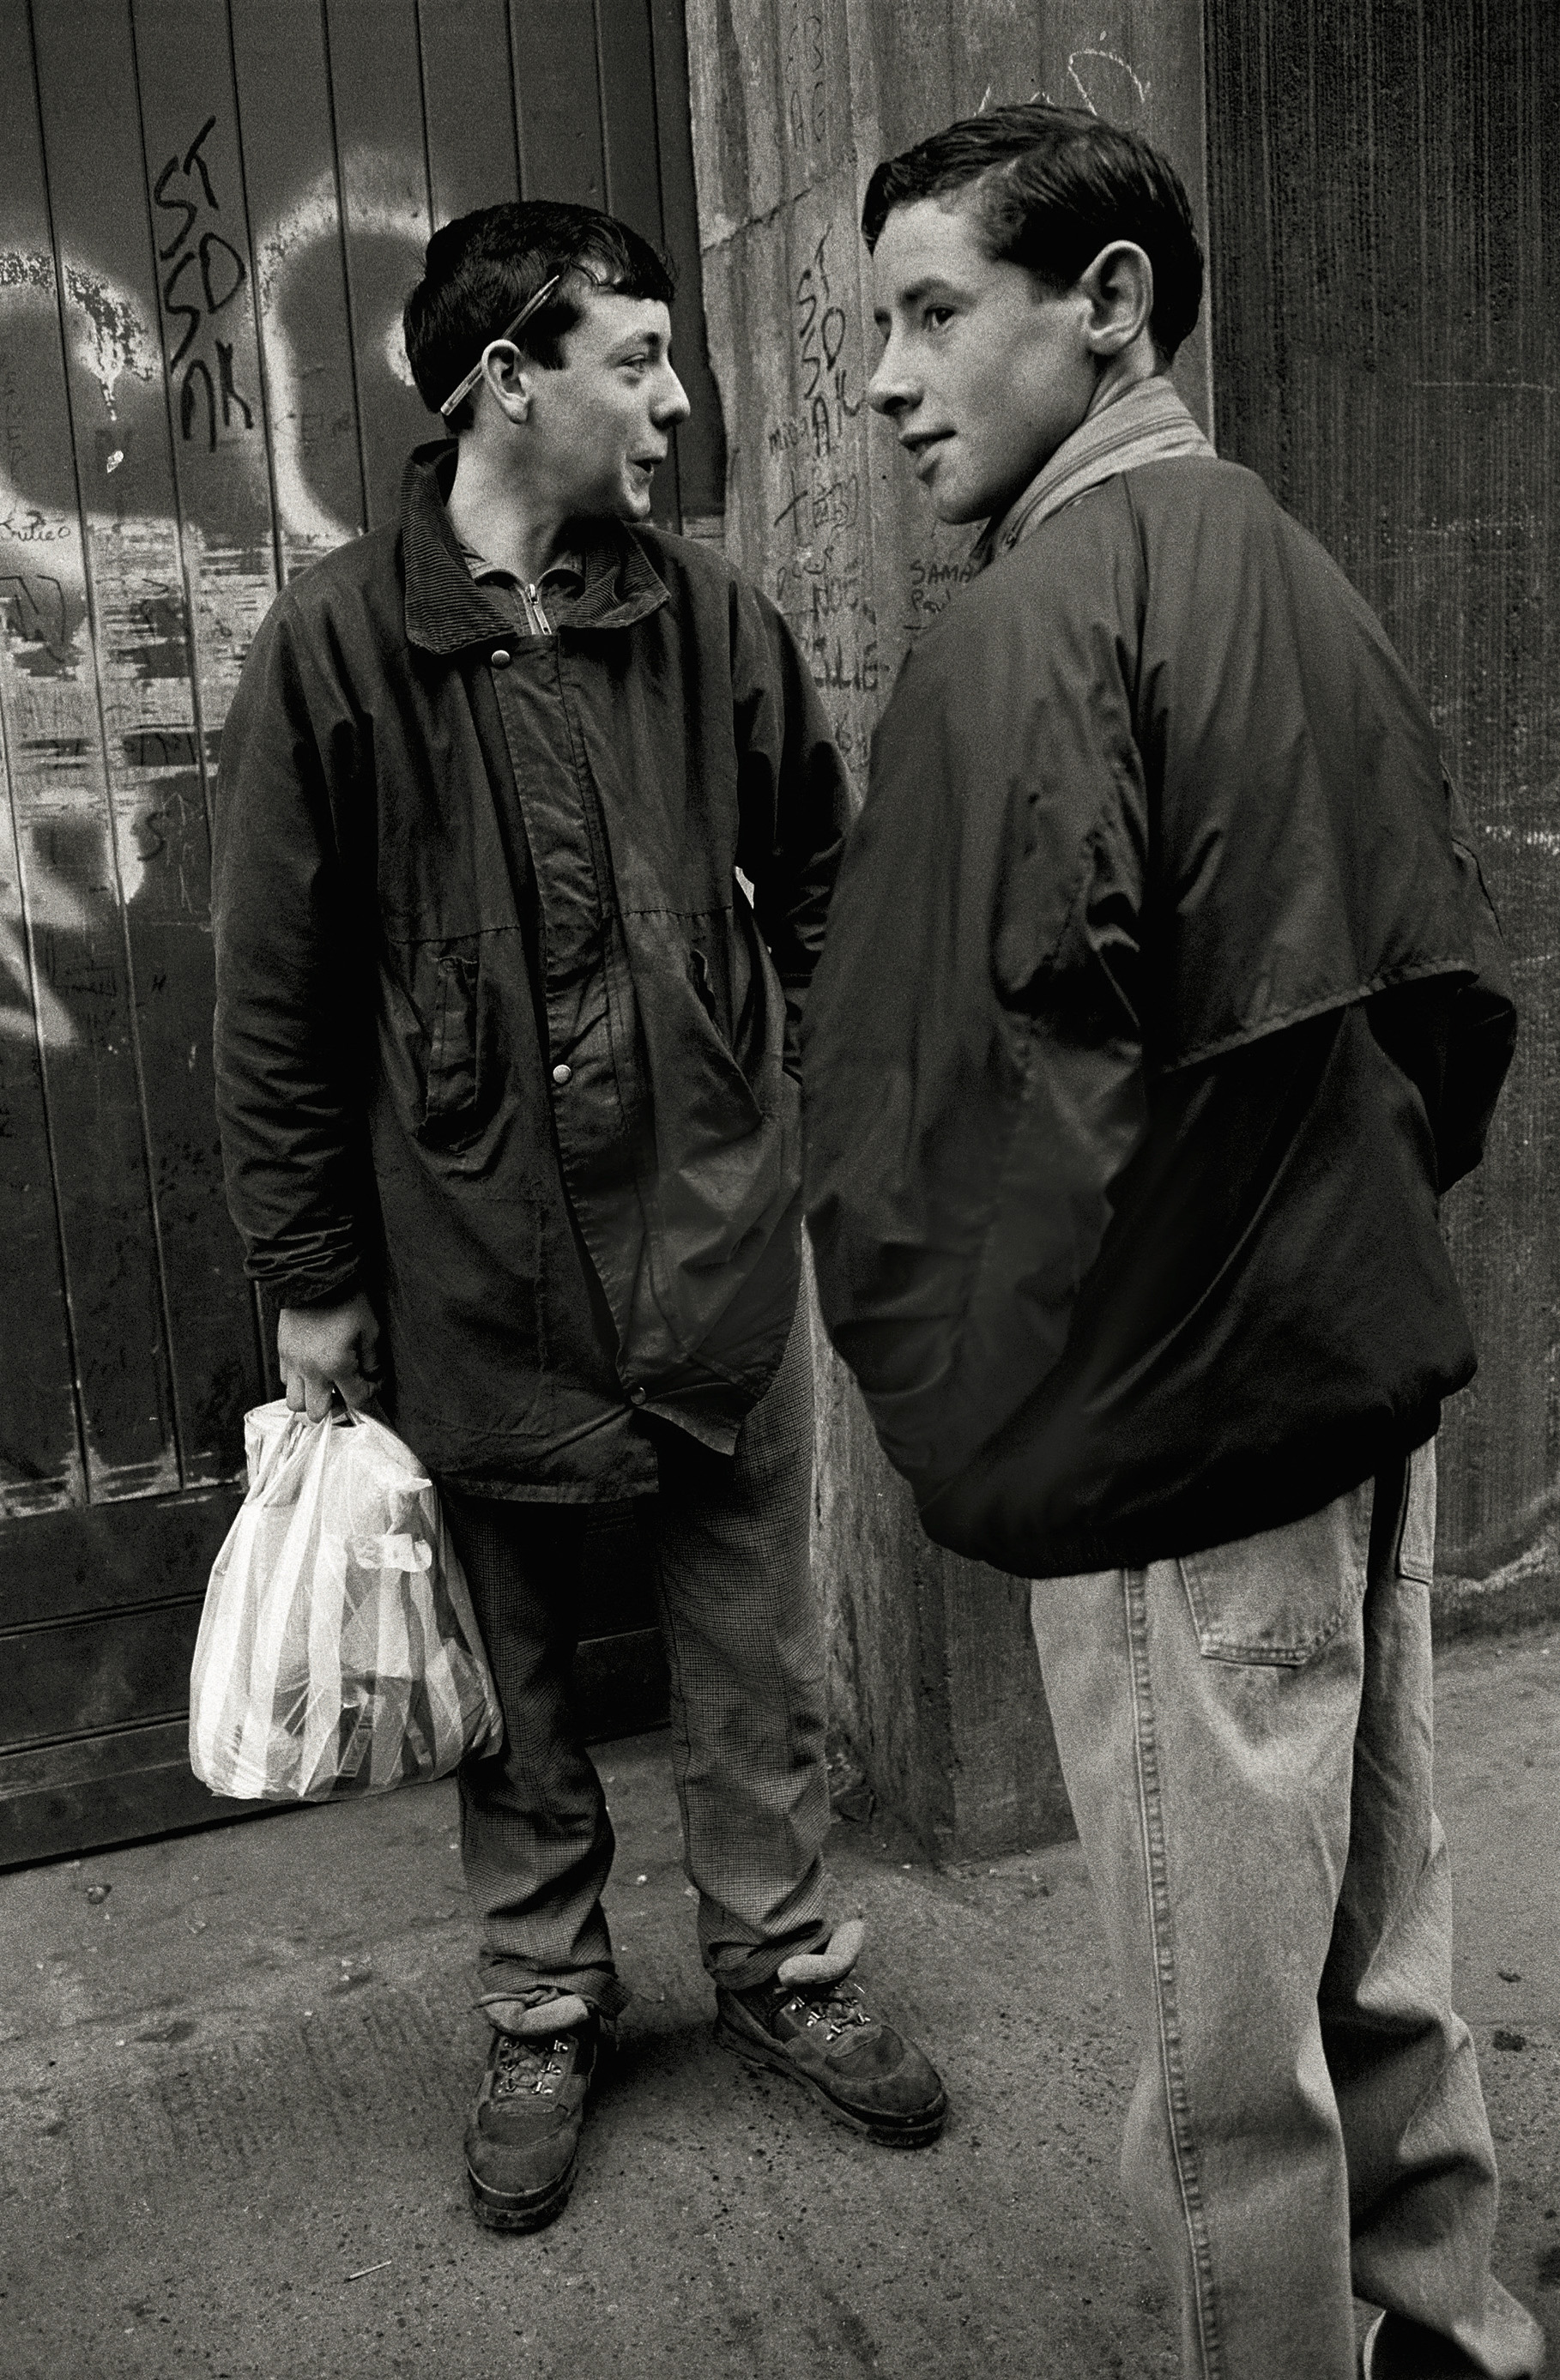 Dublin, 1991 © Krass Clement courtesy RRB PhotoBooks